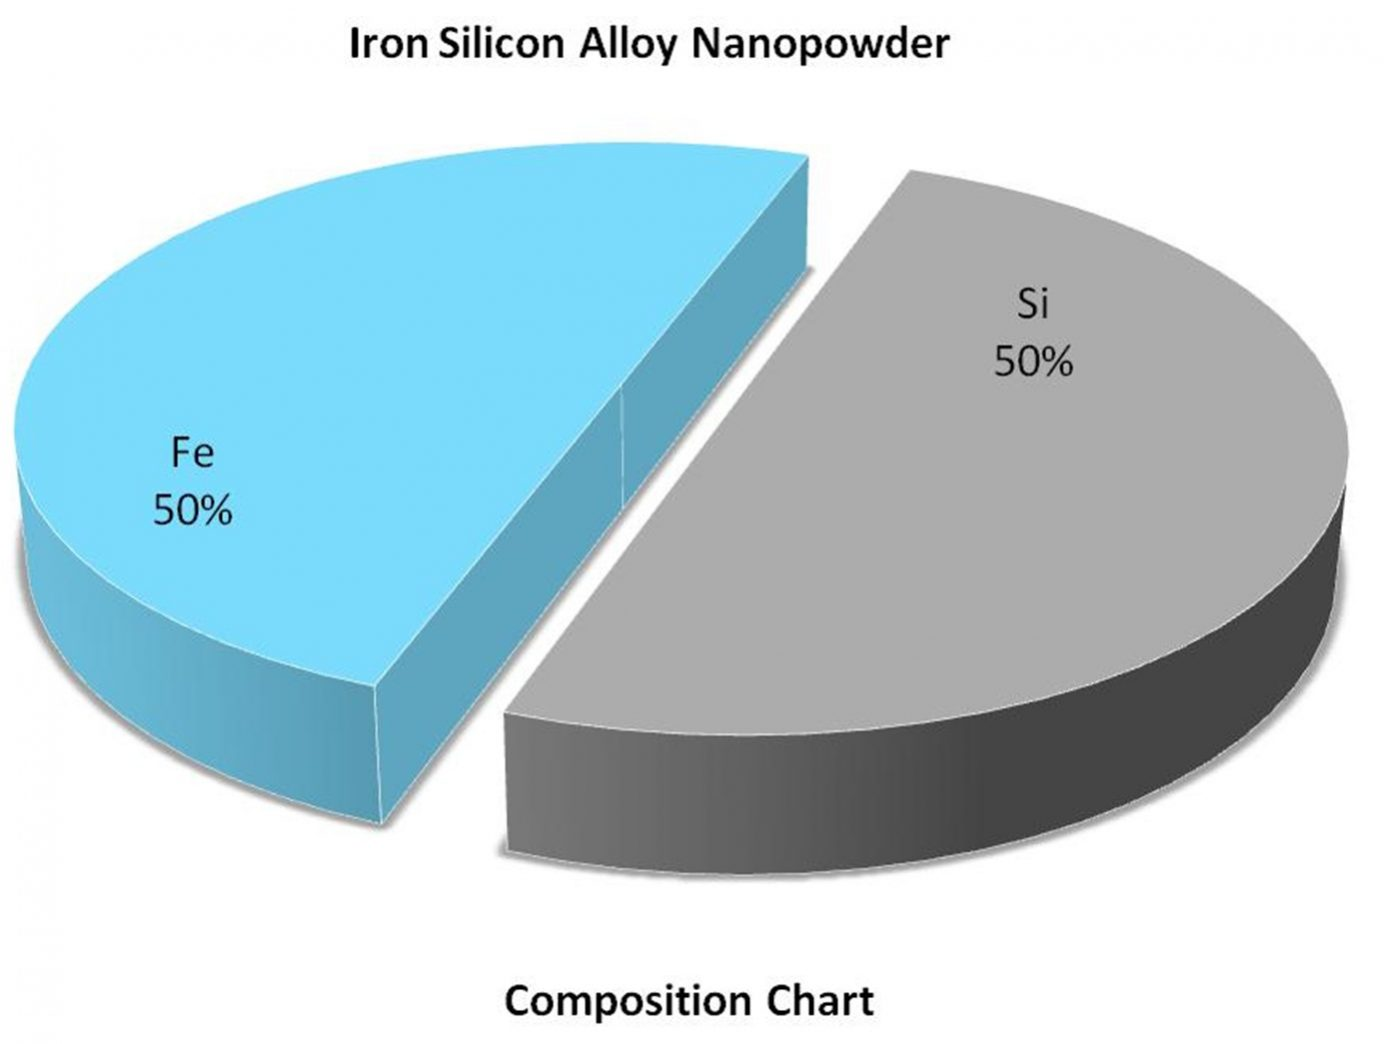 Composition Chart - Fe:Si Alloy NAnoparticles